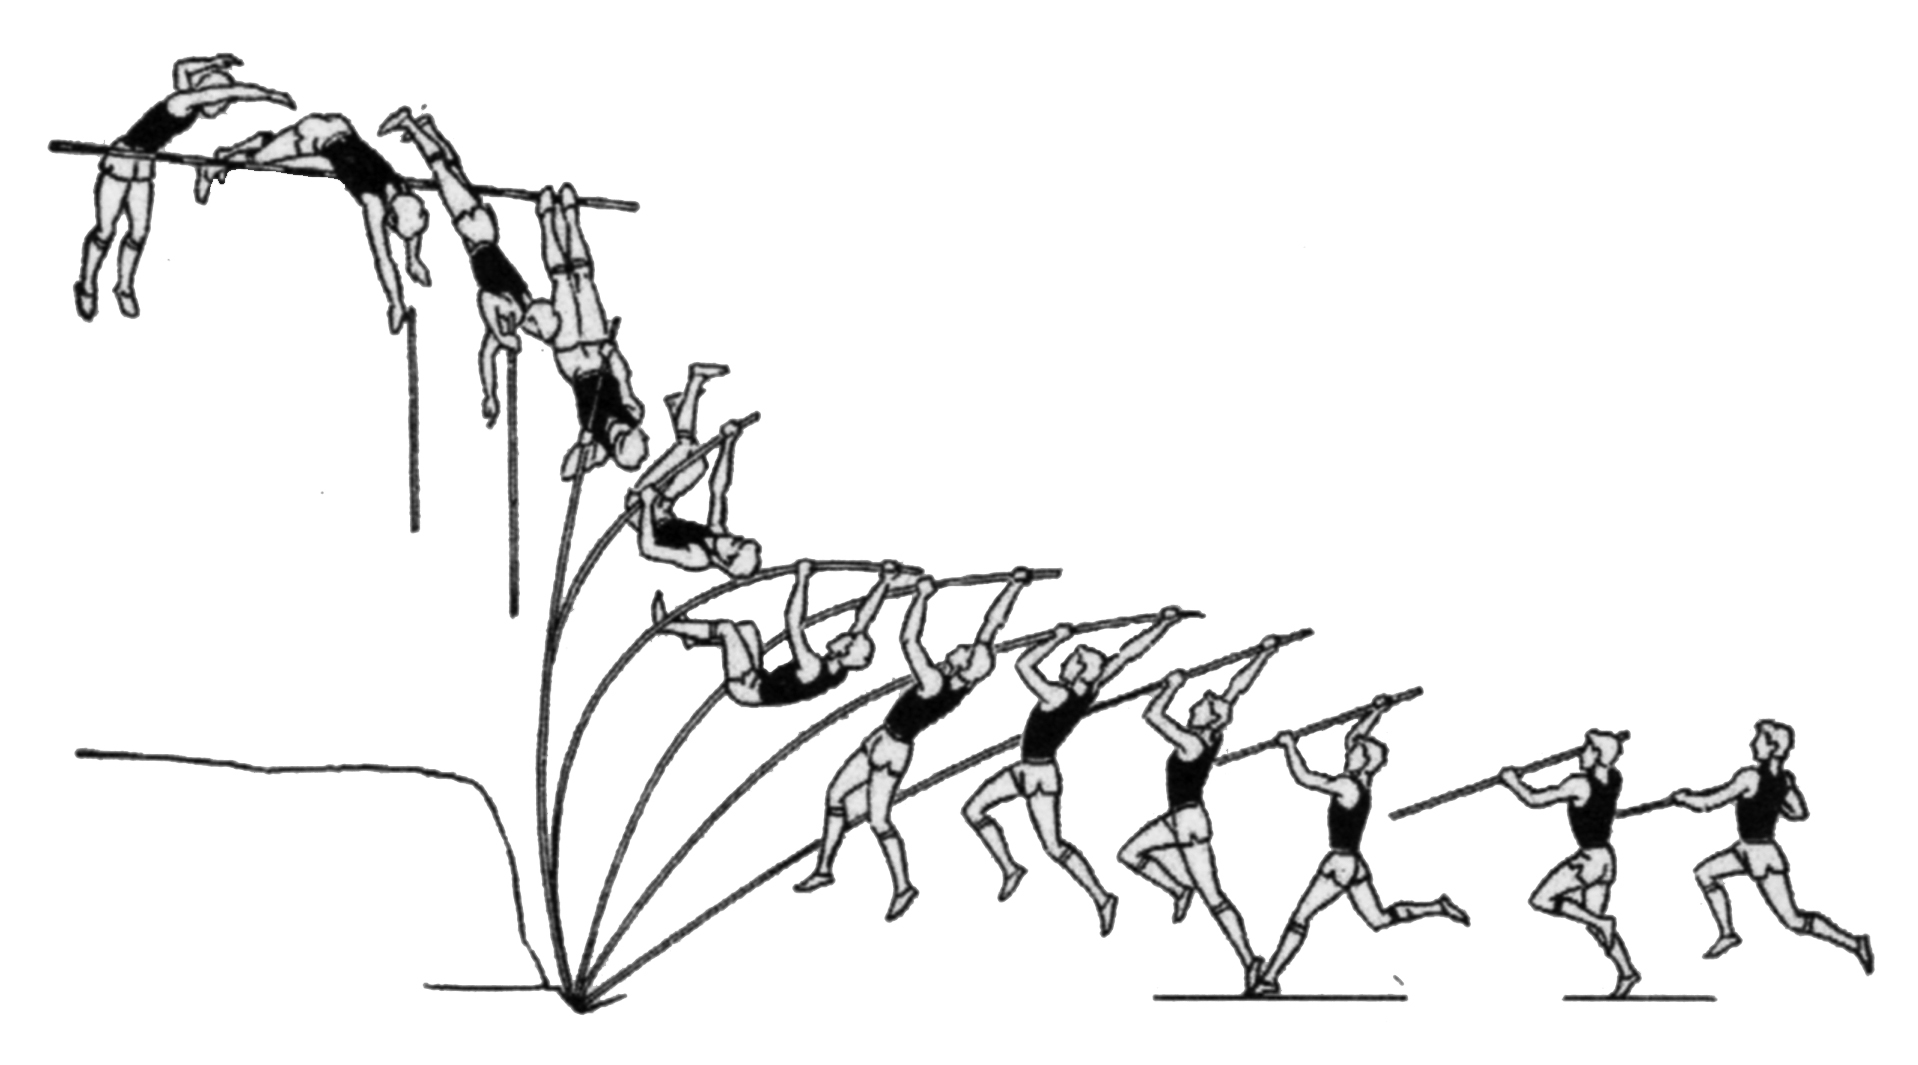 Figure 3 Typical Sequence Of Actions In The Pole Vault